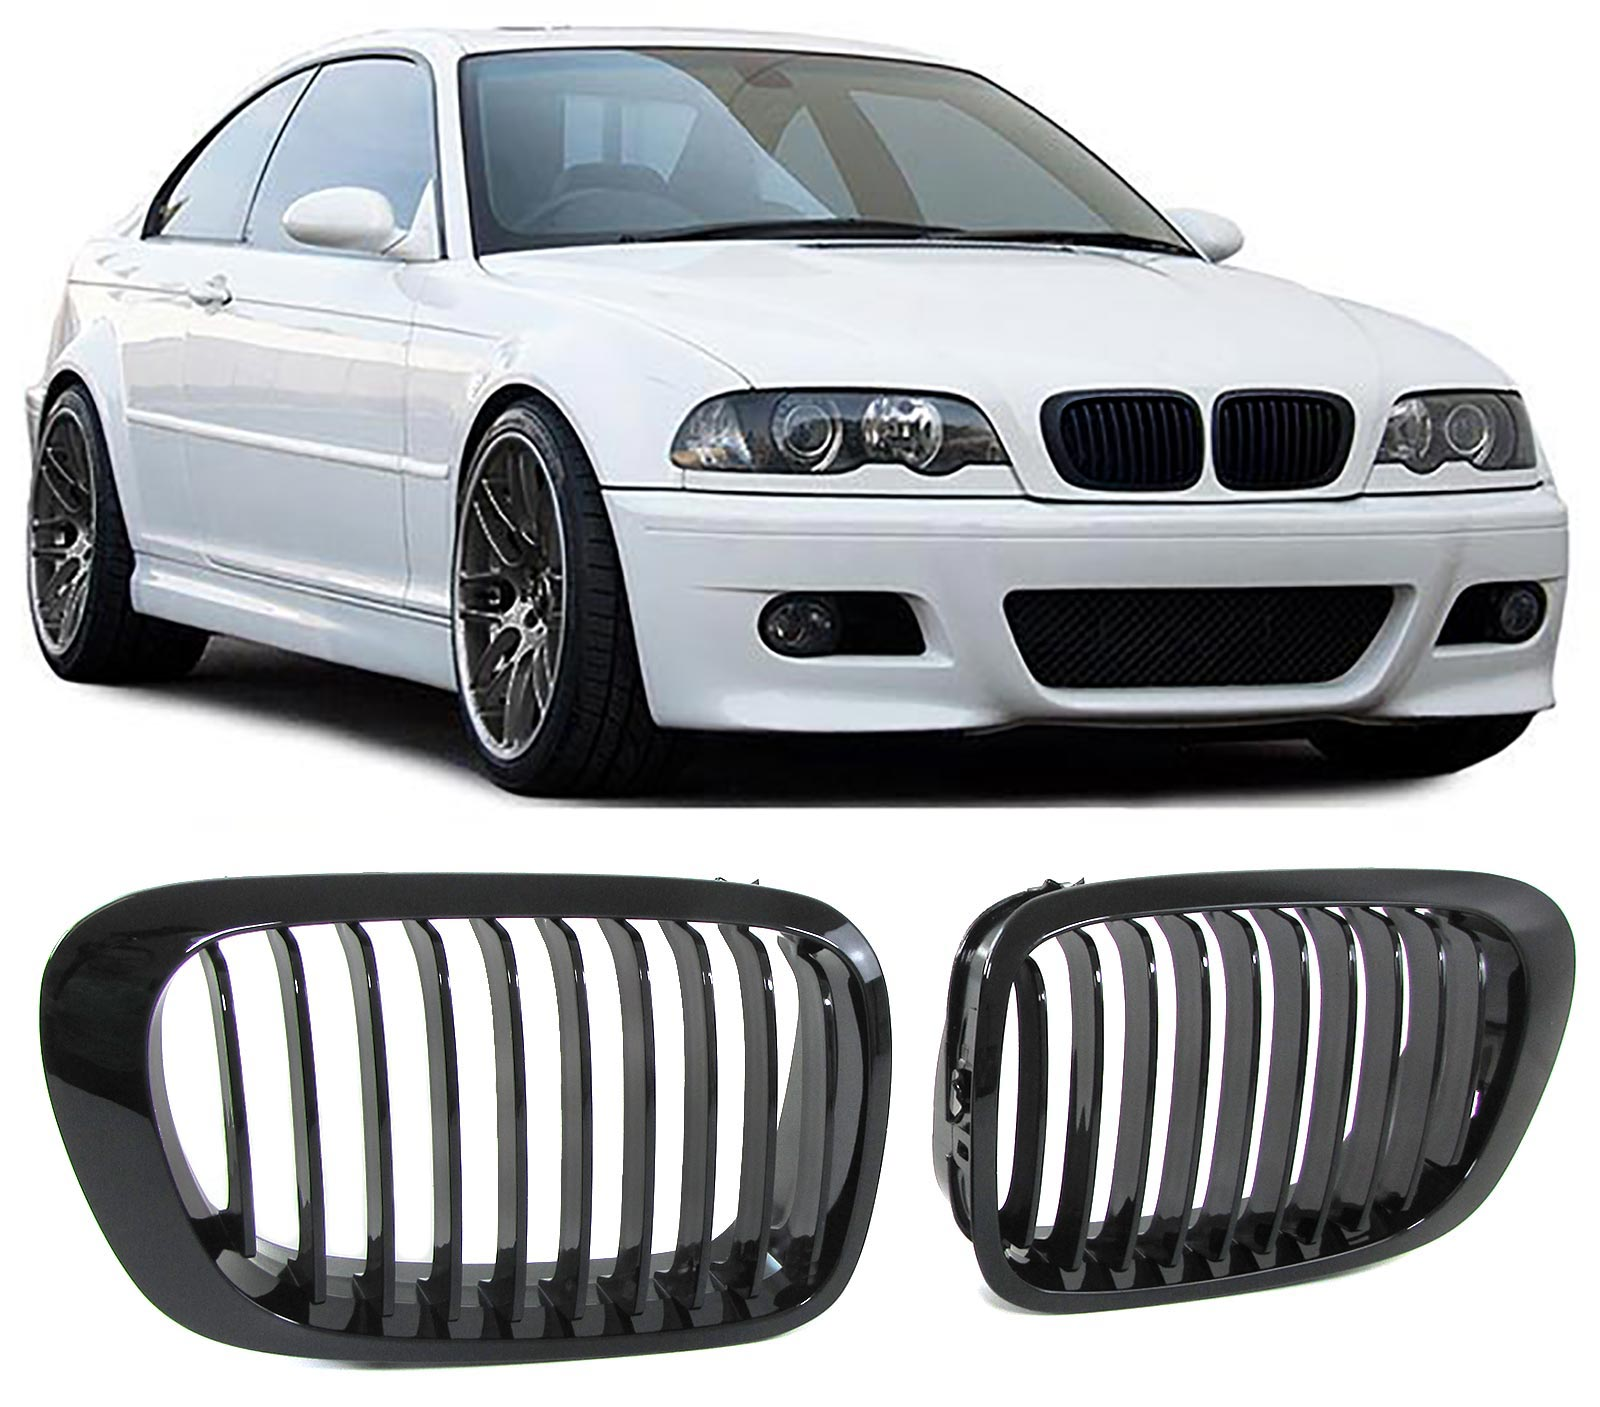 sport k hler grill nieren schwarz gl nzend f r bmw 3er e46. Black Bedroom Furniture Sets. Home Design Ideas